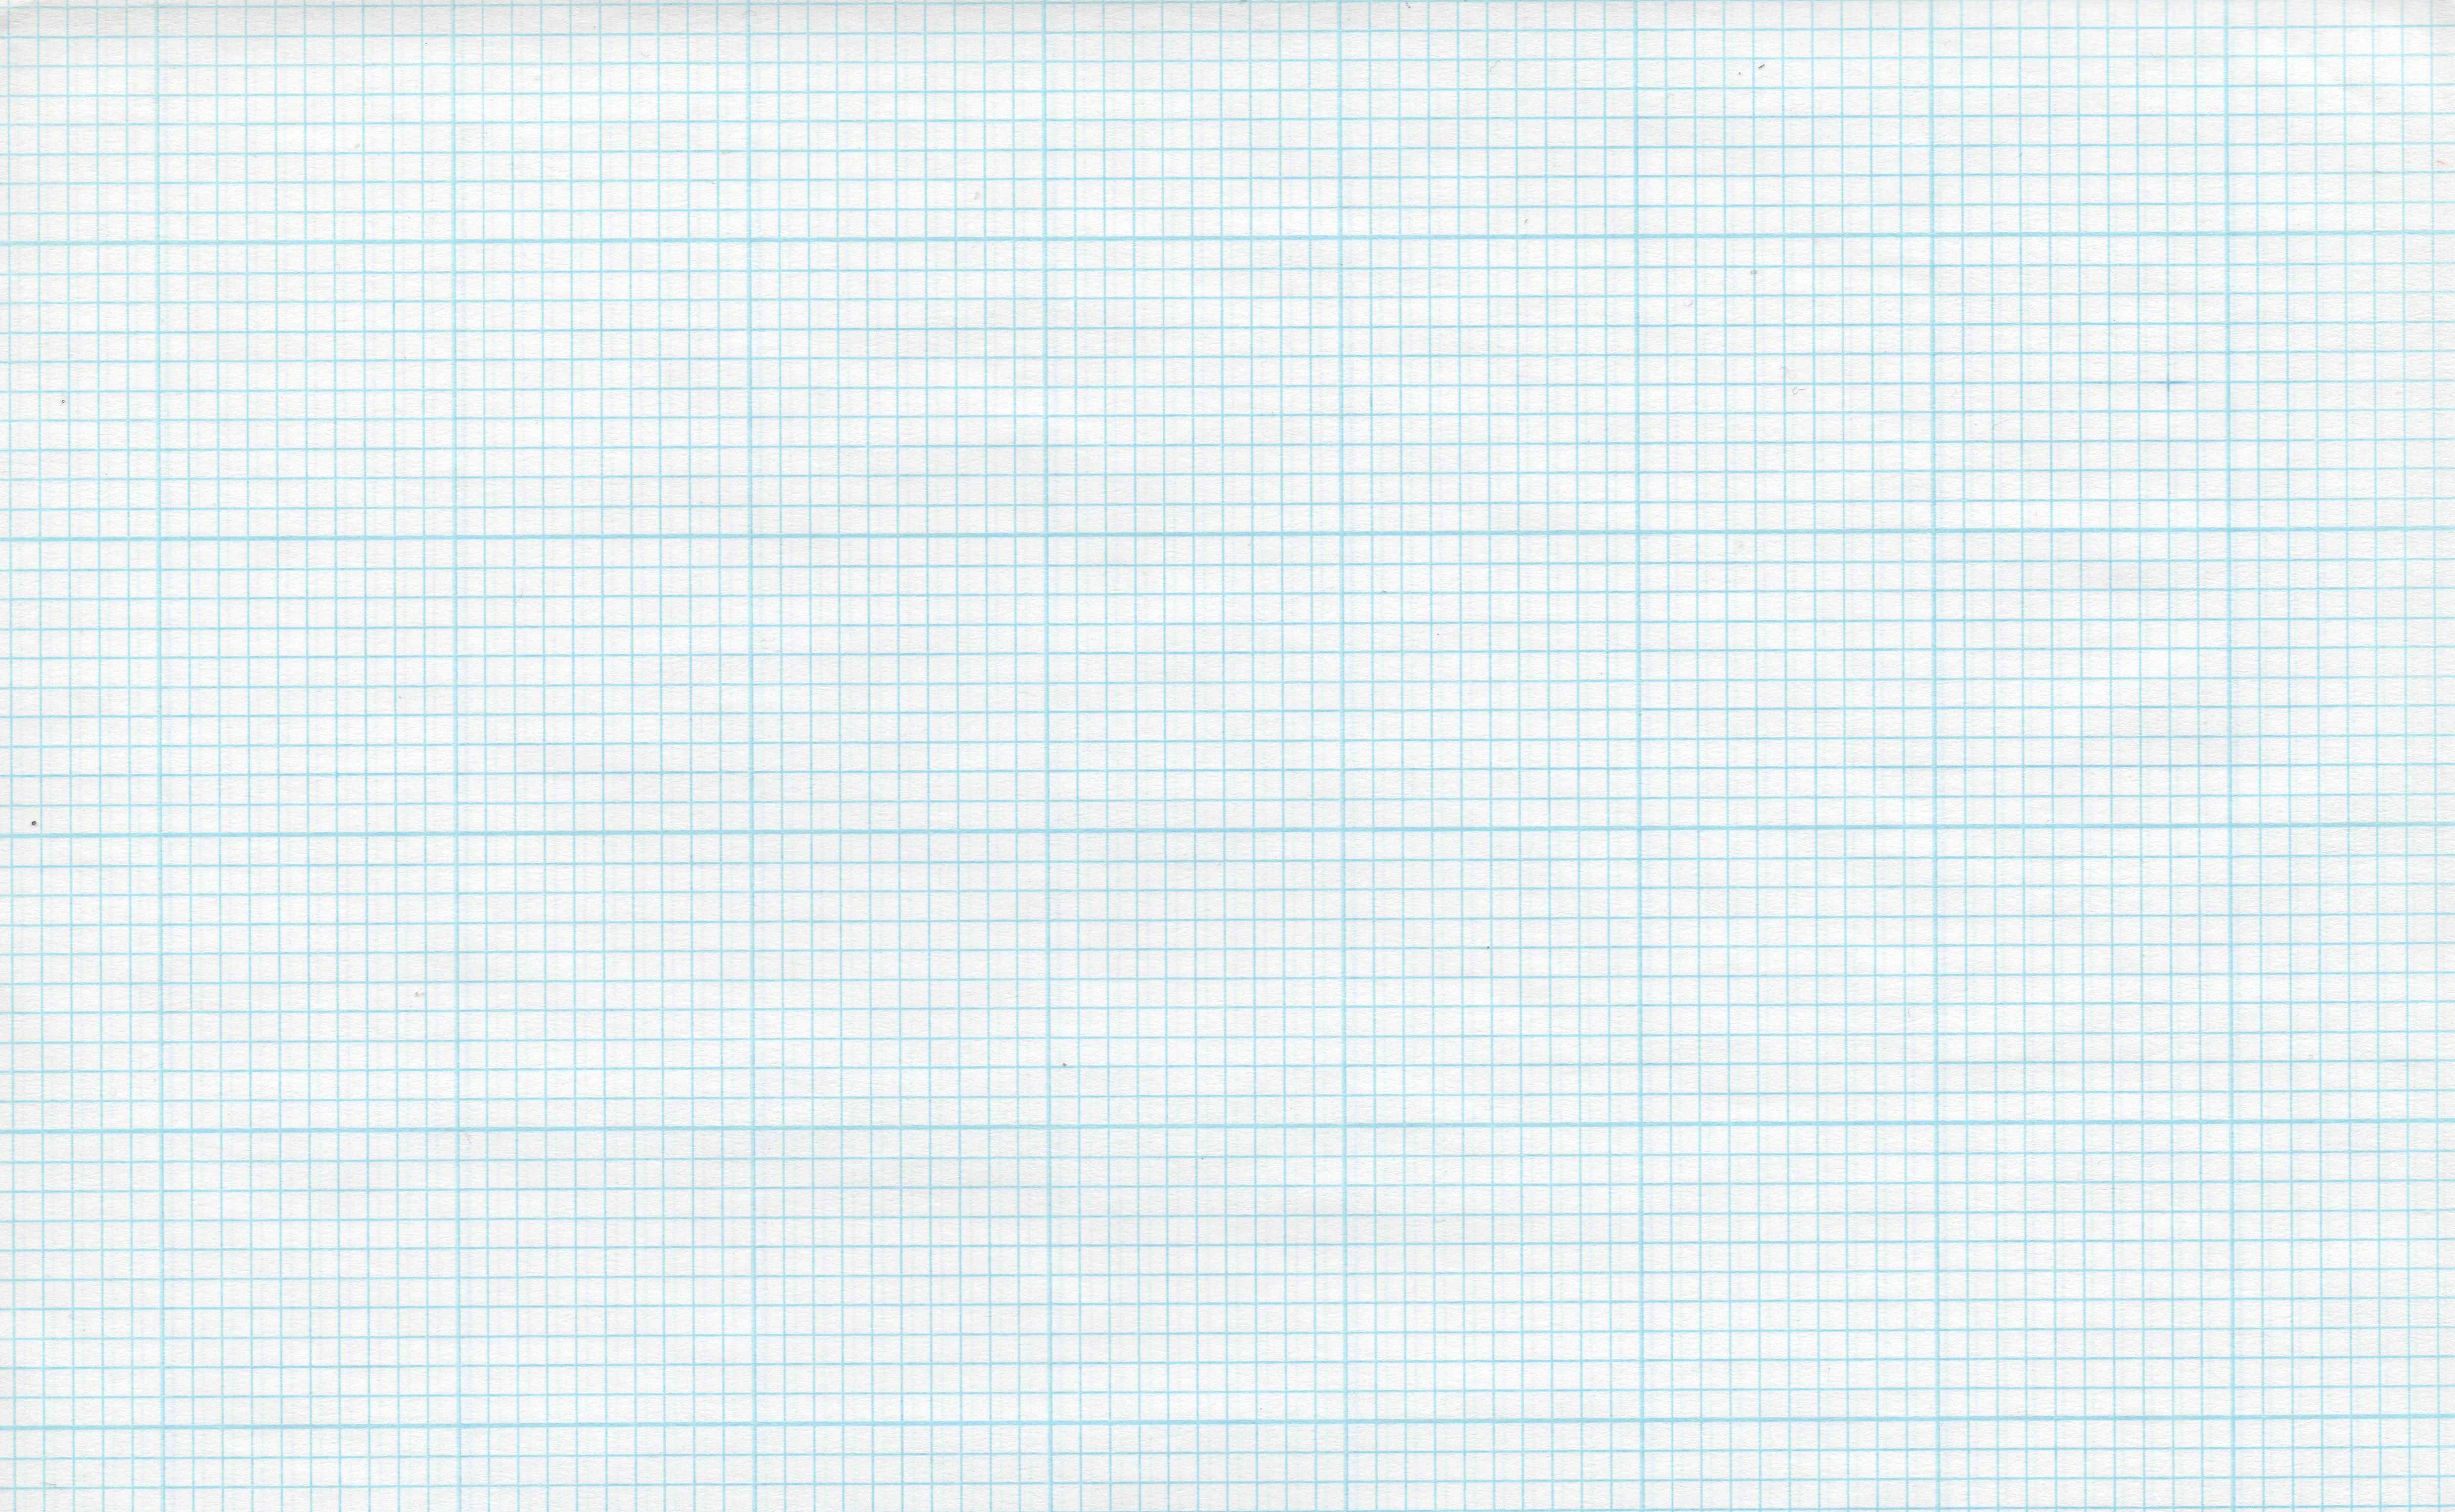 graph paper by